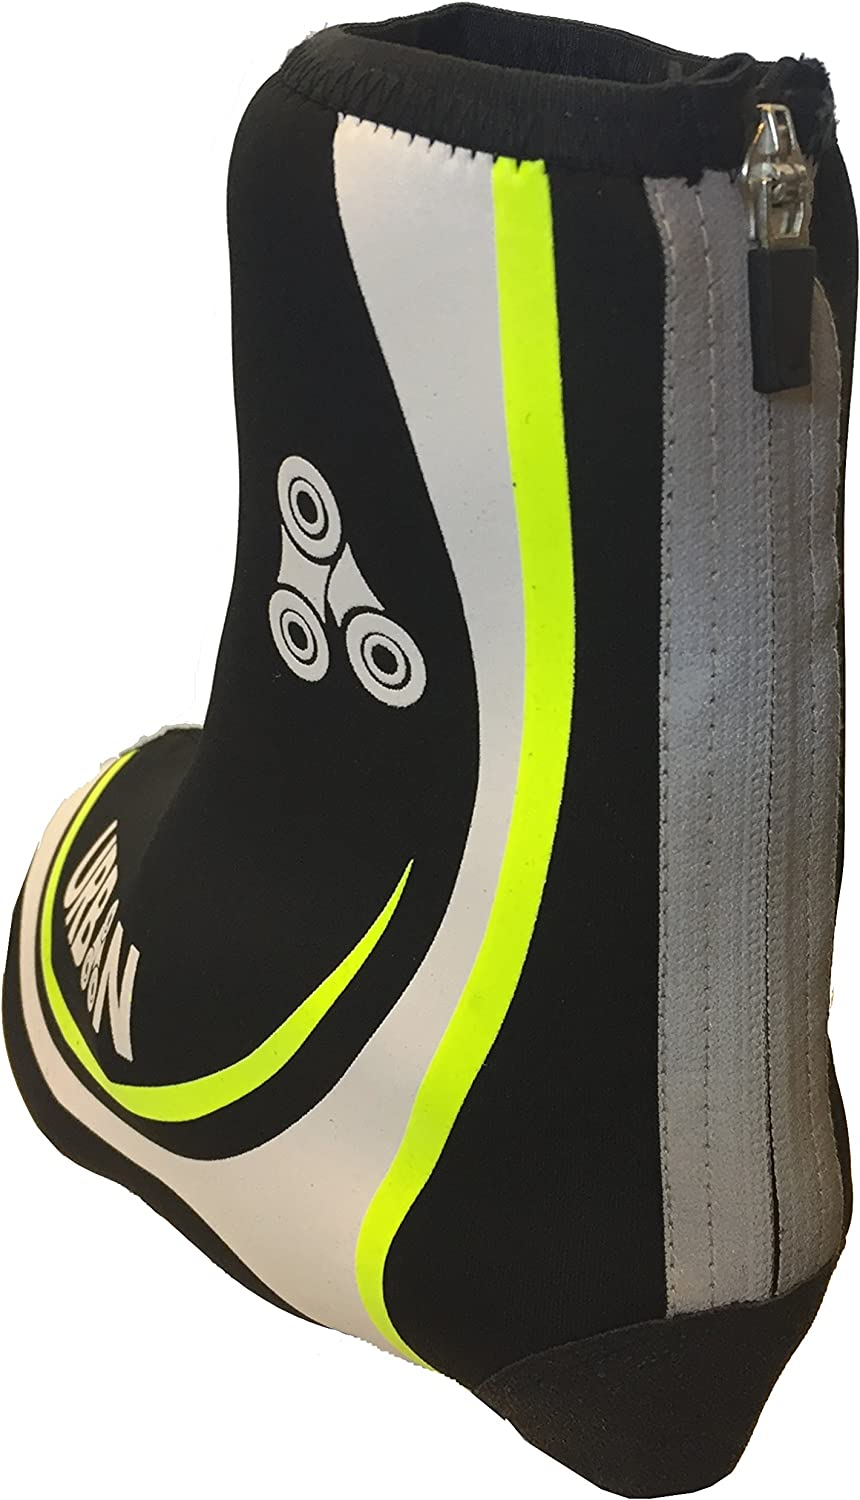 Waterproof Neoprene Overshoes for Road and MTB Windproof All Clip Shoe Types Urban Cycling Shoe Covers with Reflective Zipper